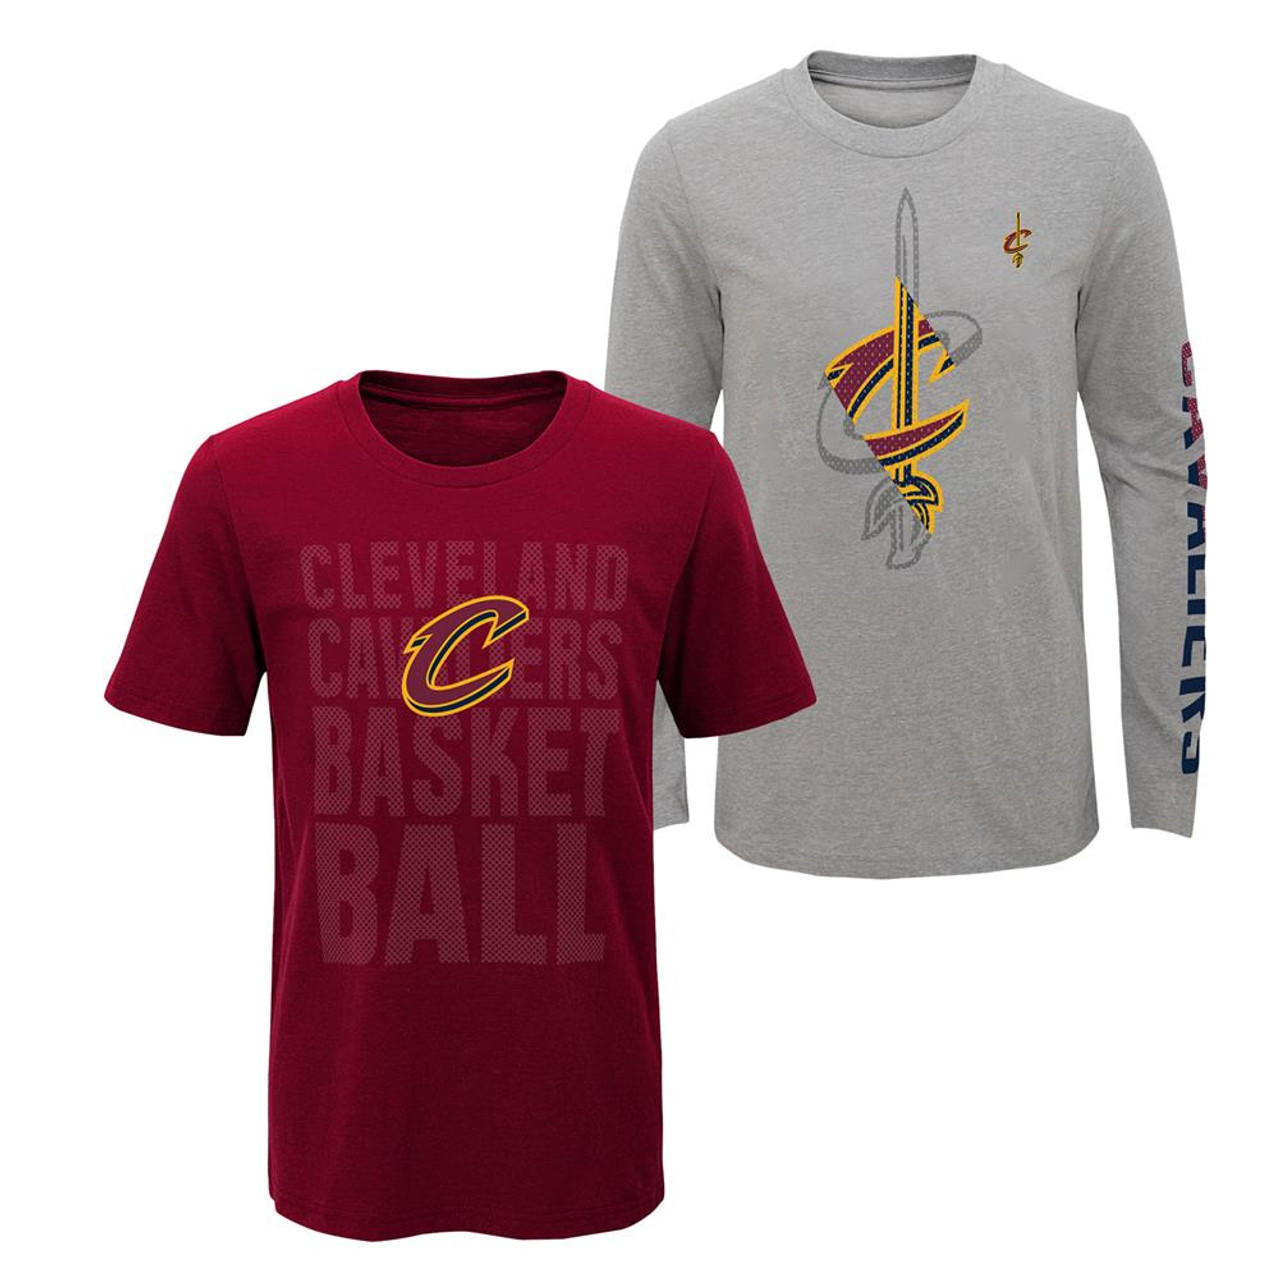 Youth Boys Cleveland Cavaliers Tee Shirt 3 in 1 Combo Set